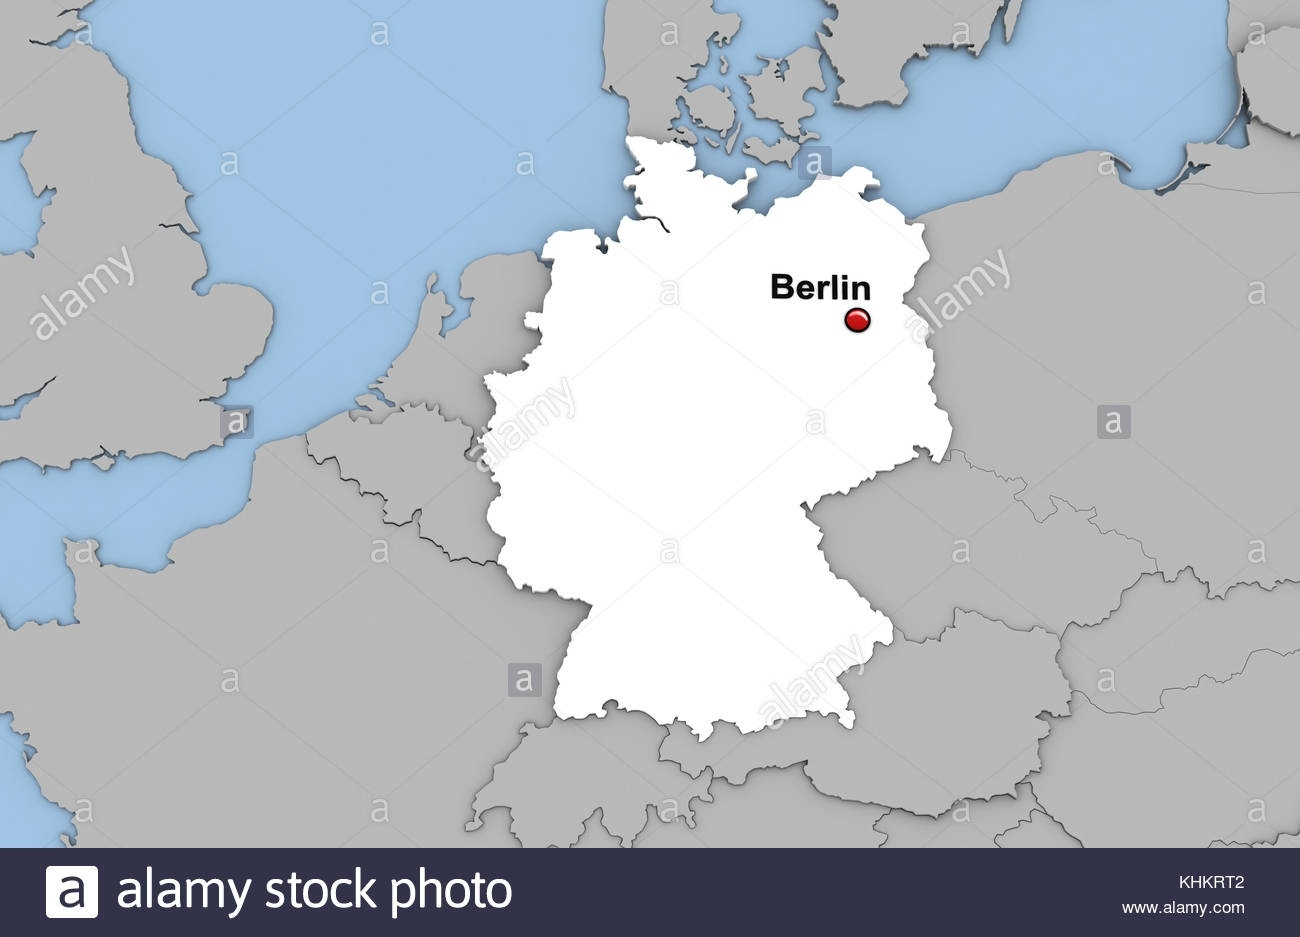 Berlin Germany Map From Maps Best Gallery World . 1170464 intended for Berlin Germany On World Map